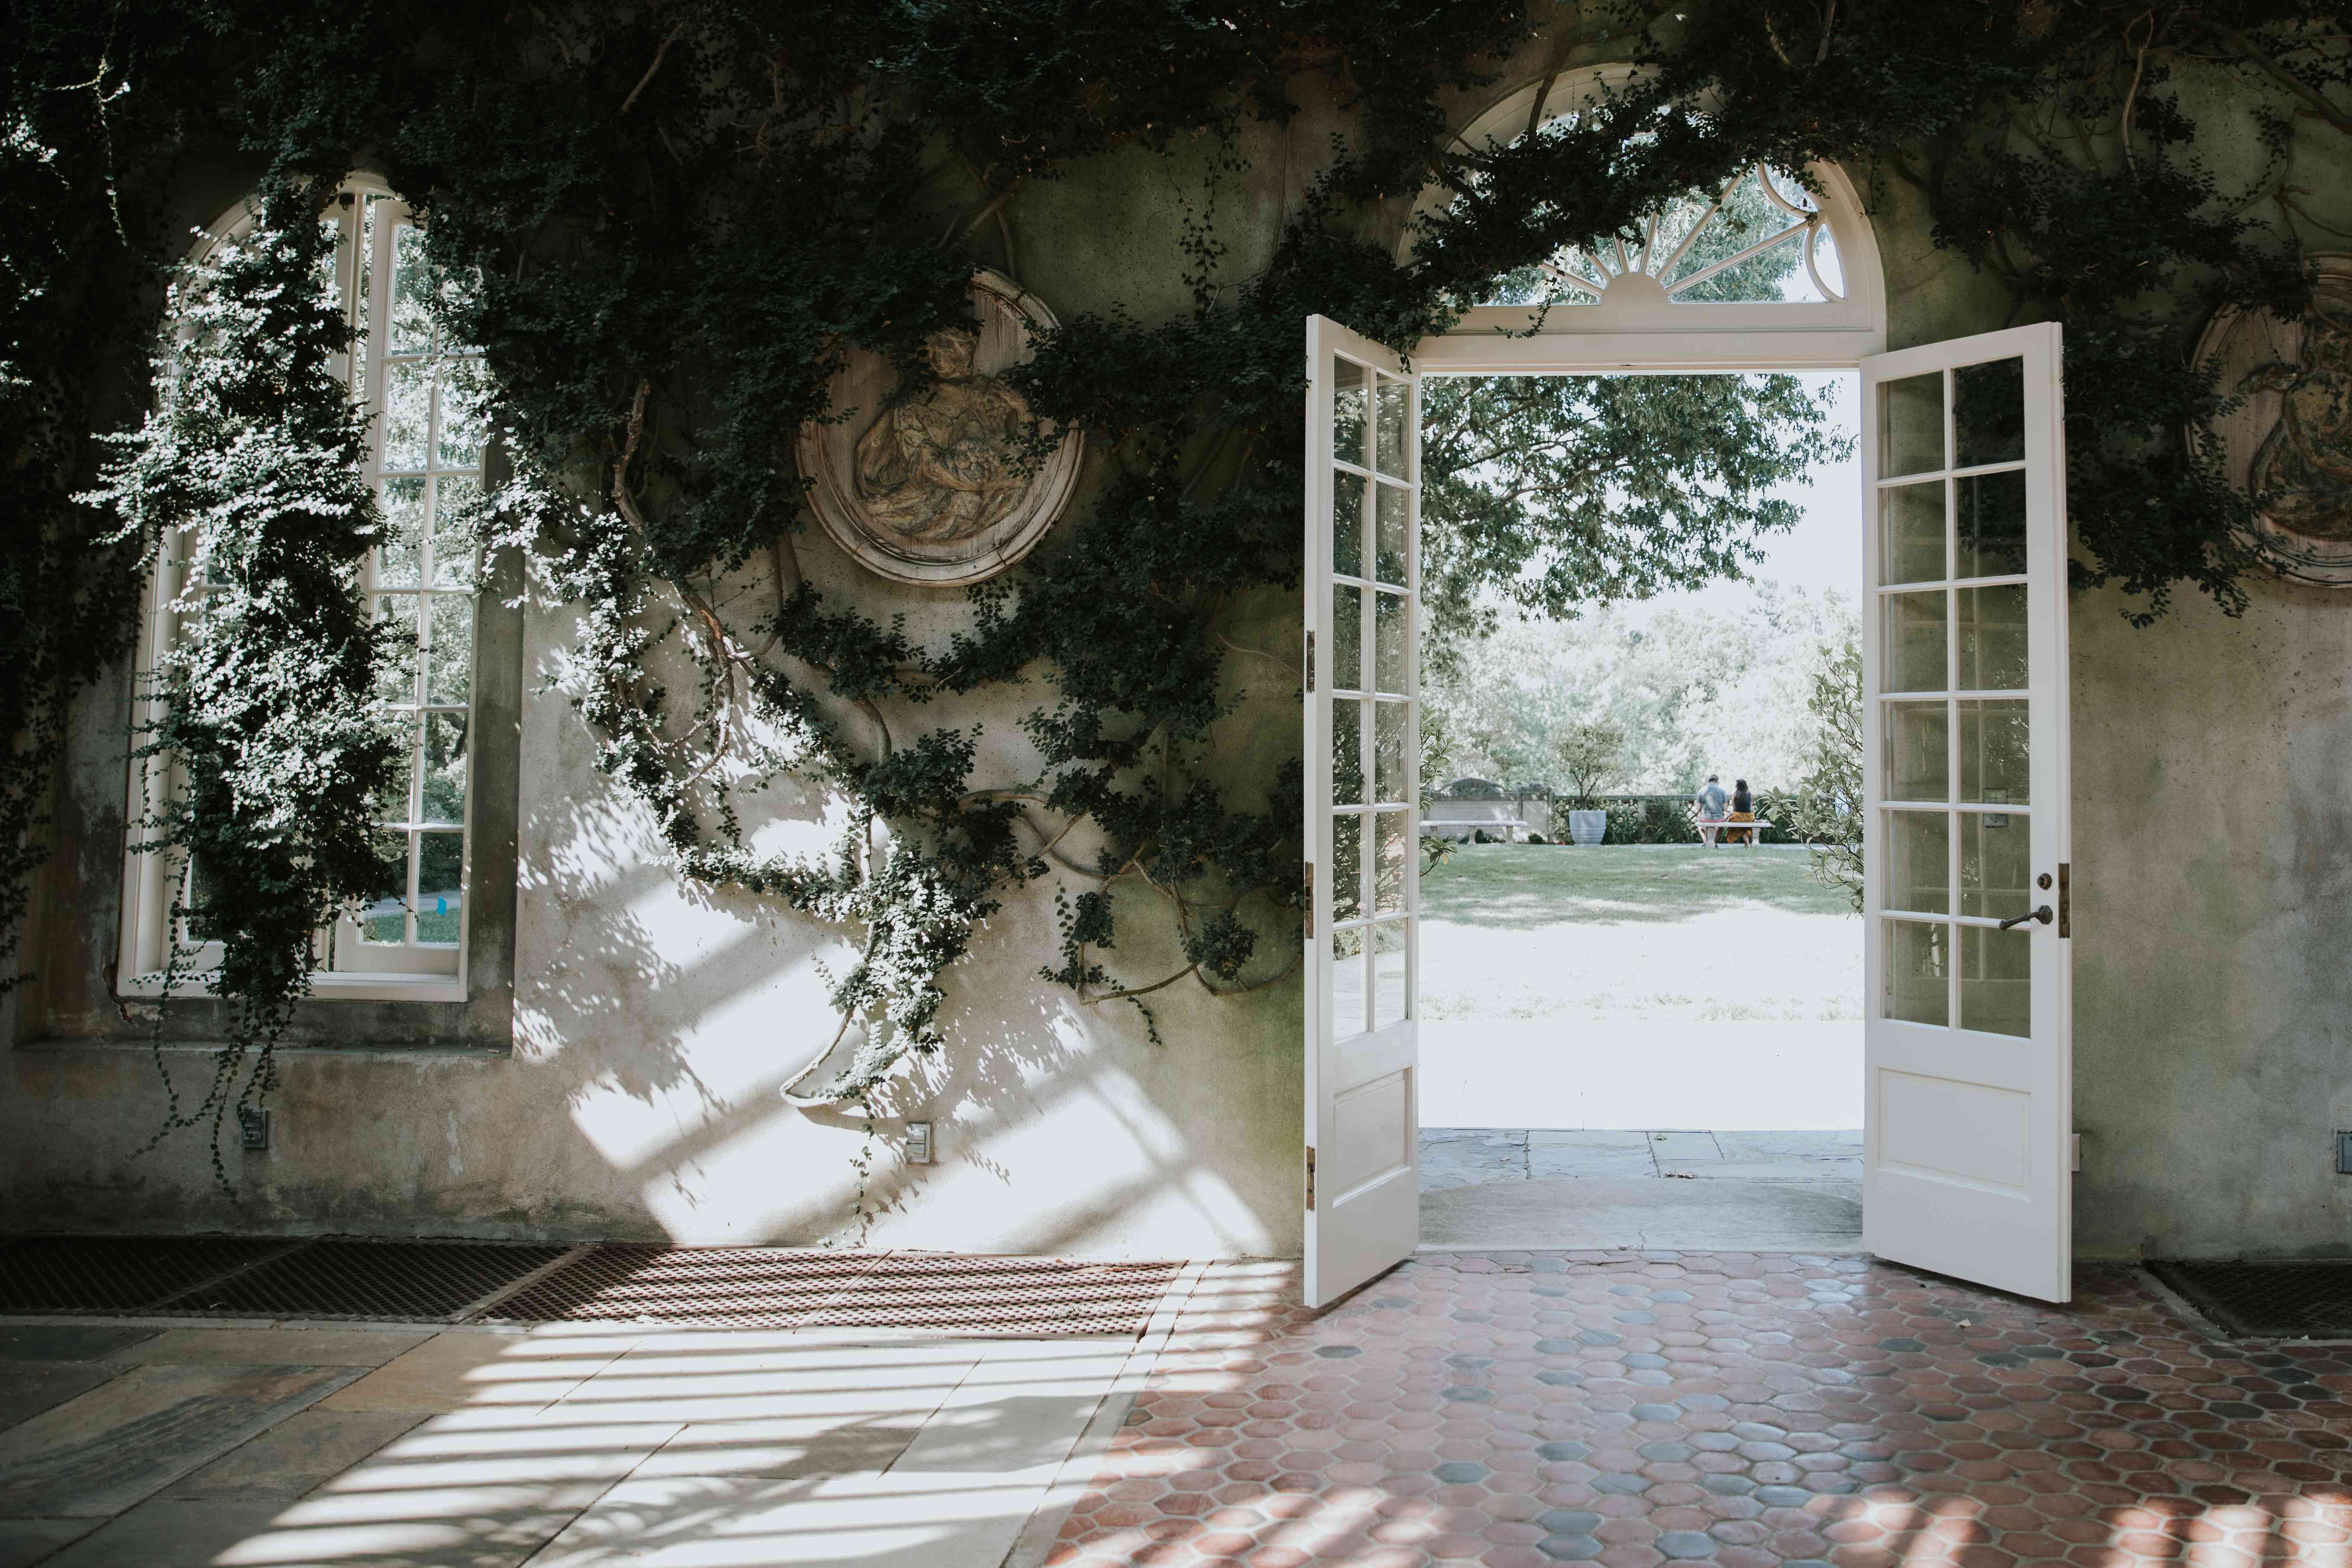 A wall covered in vines with a white door opening to a garden in Dumbarton Oaks